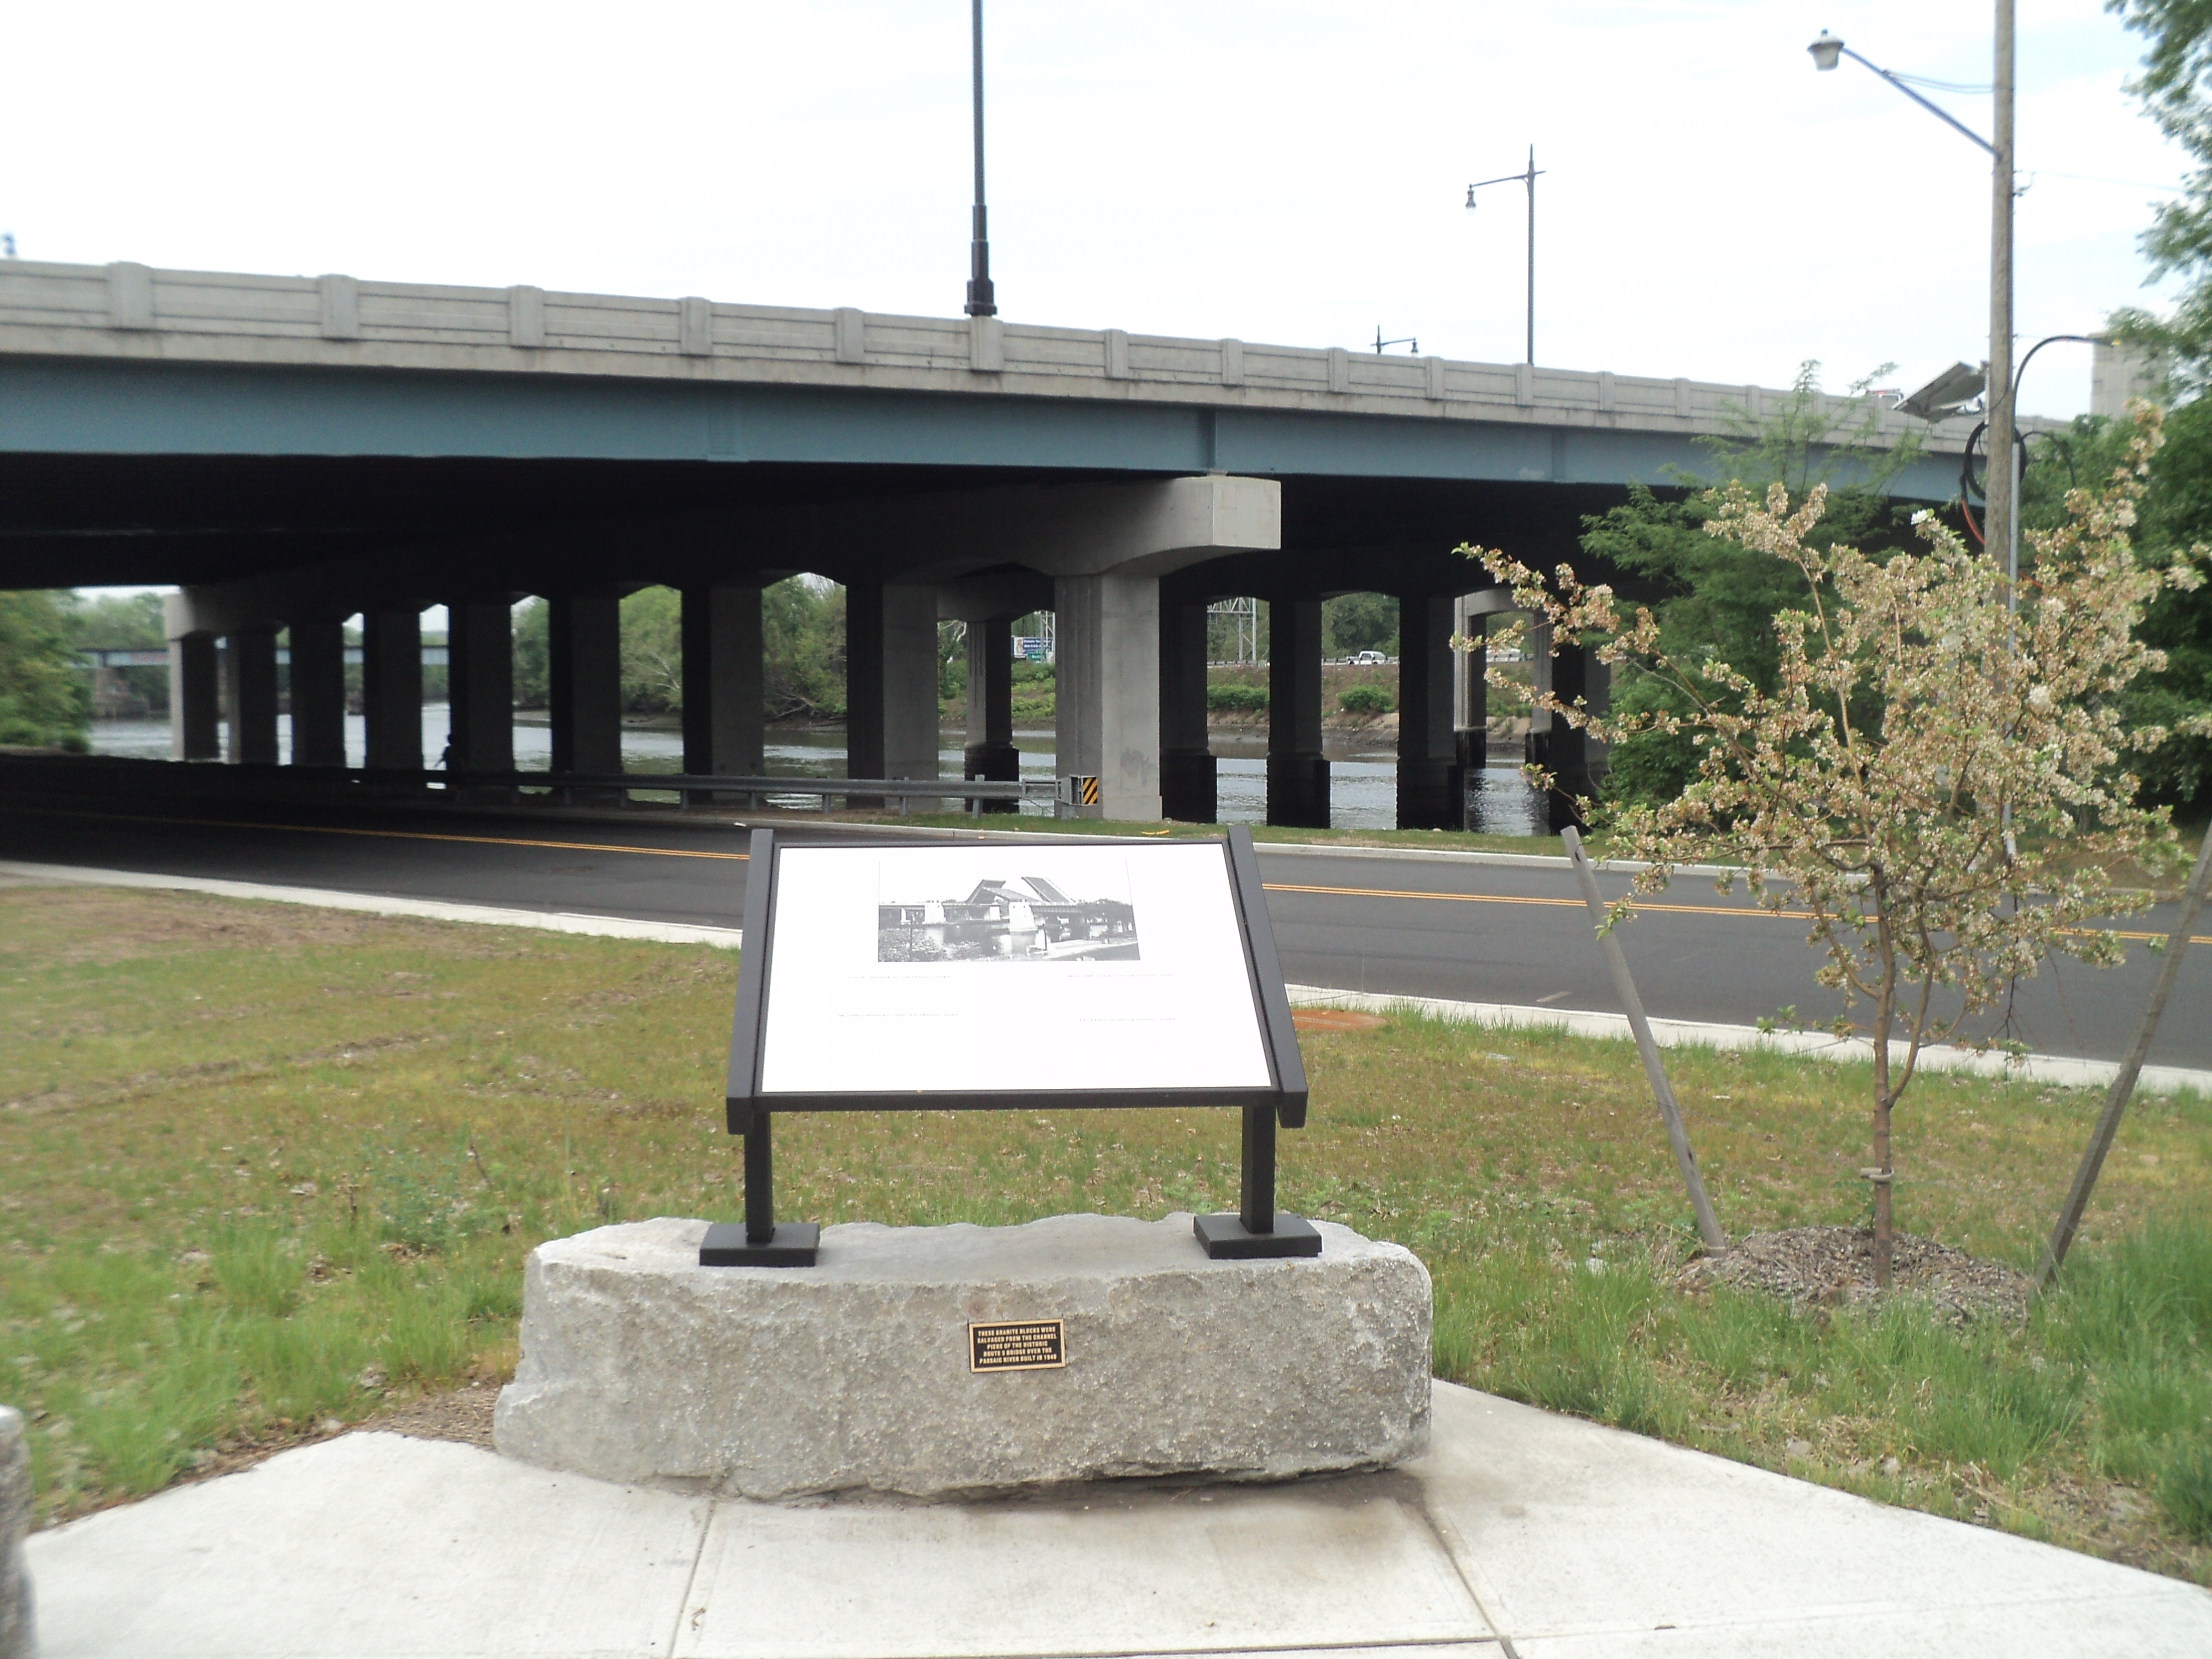 The Passaic River Marker